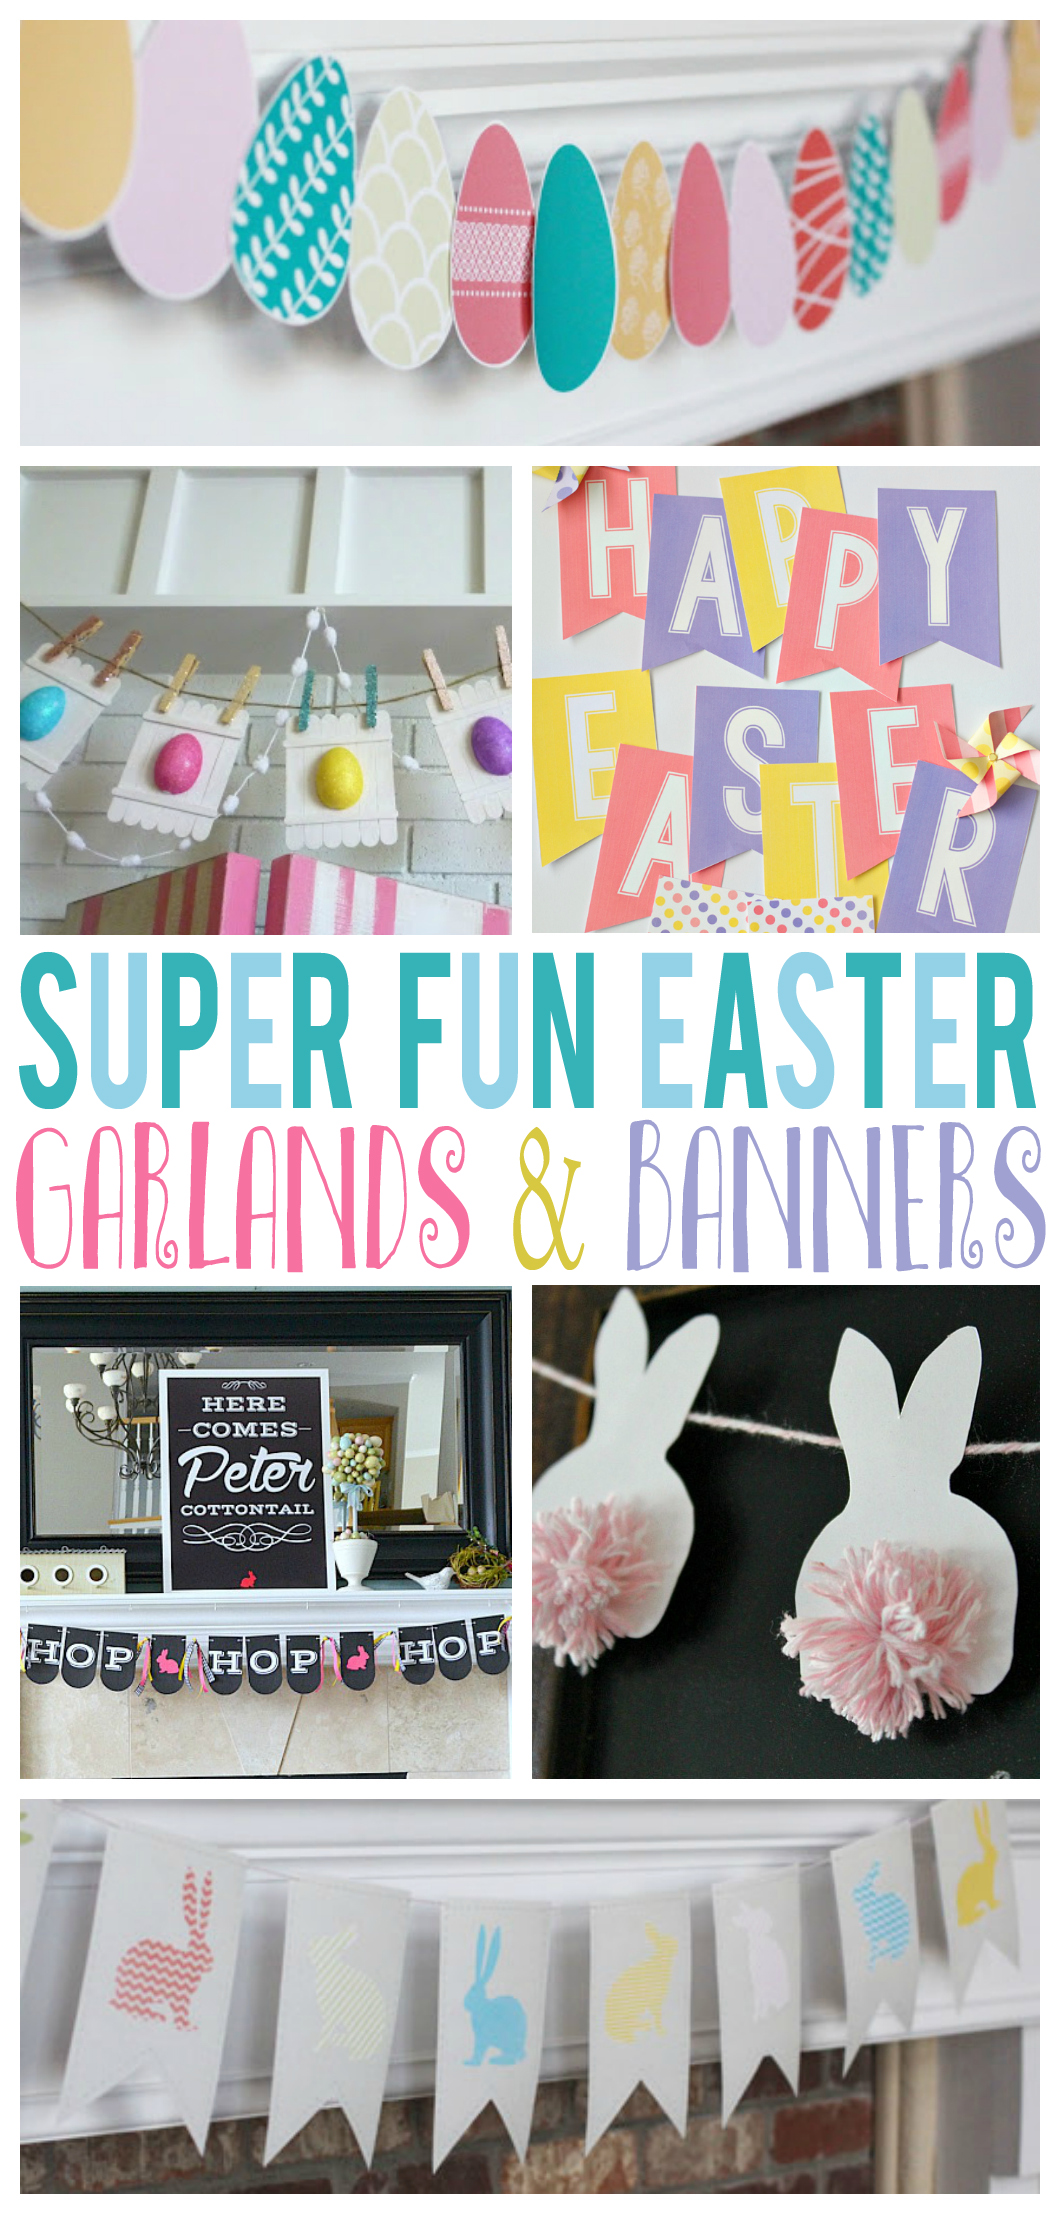 Super Fun Easter Garlands and Banners | Easter Decorating Ideas